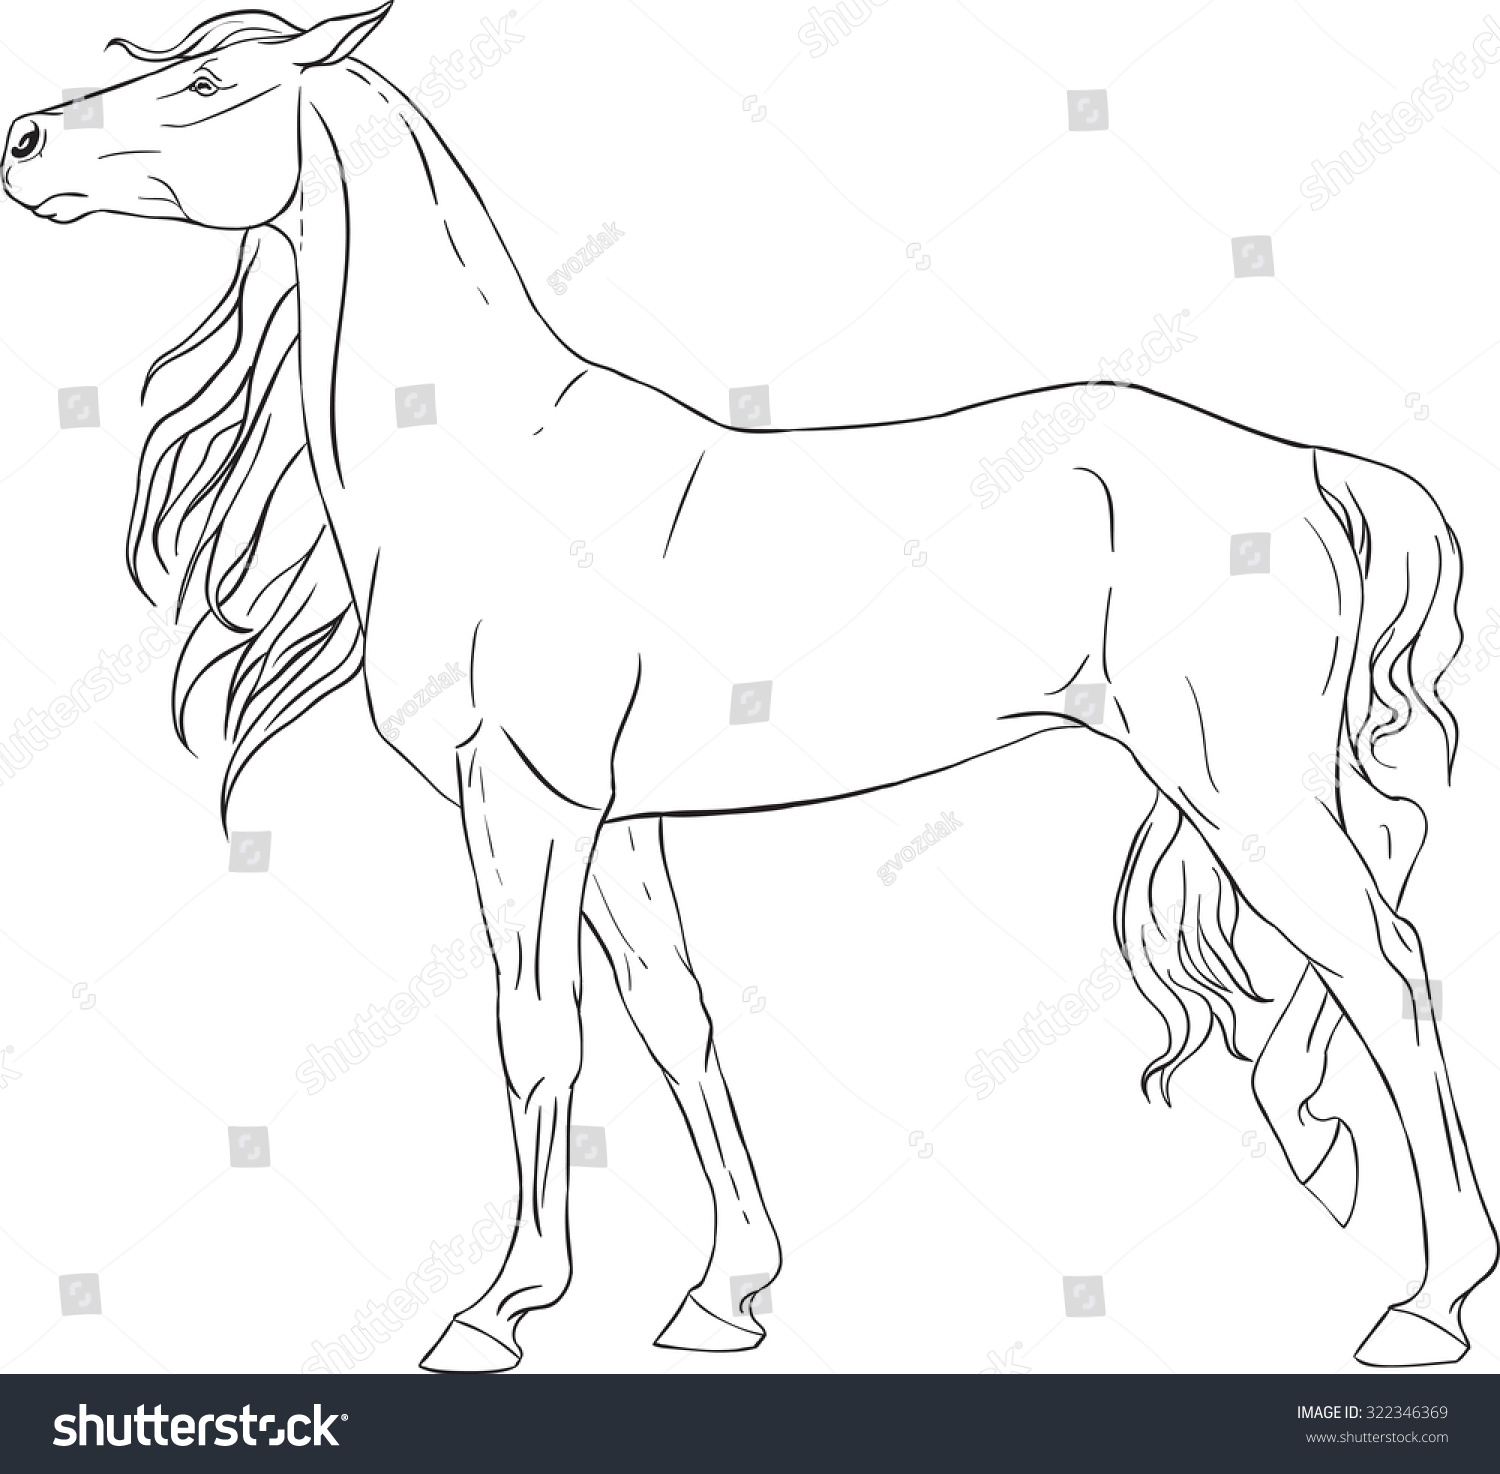 Coloring book with a horse | EZ Canvas